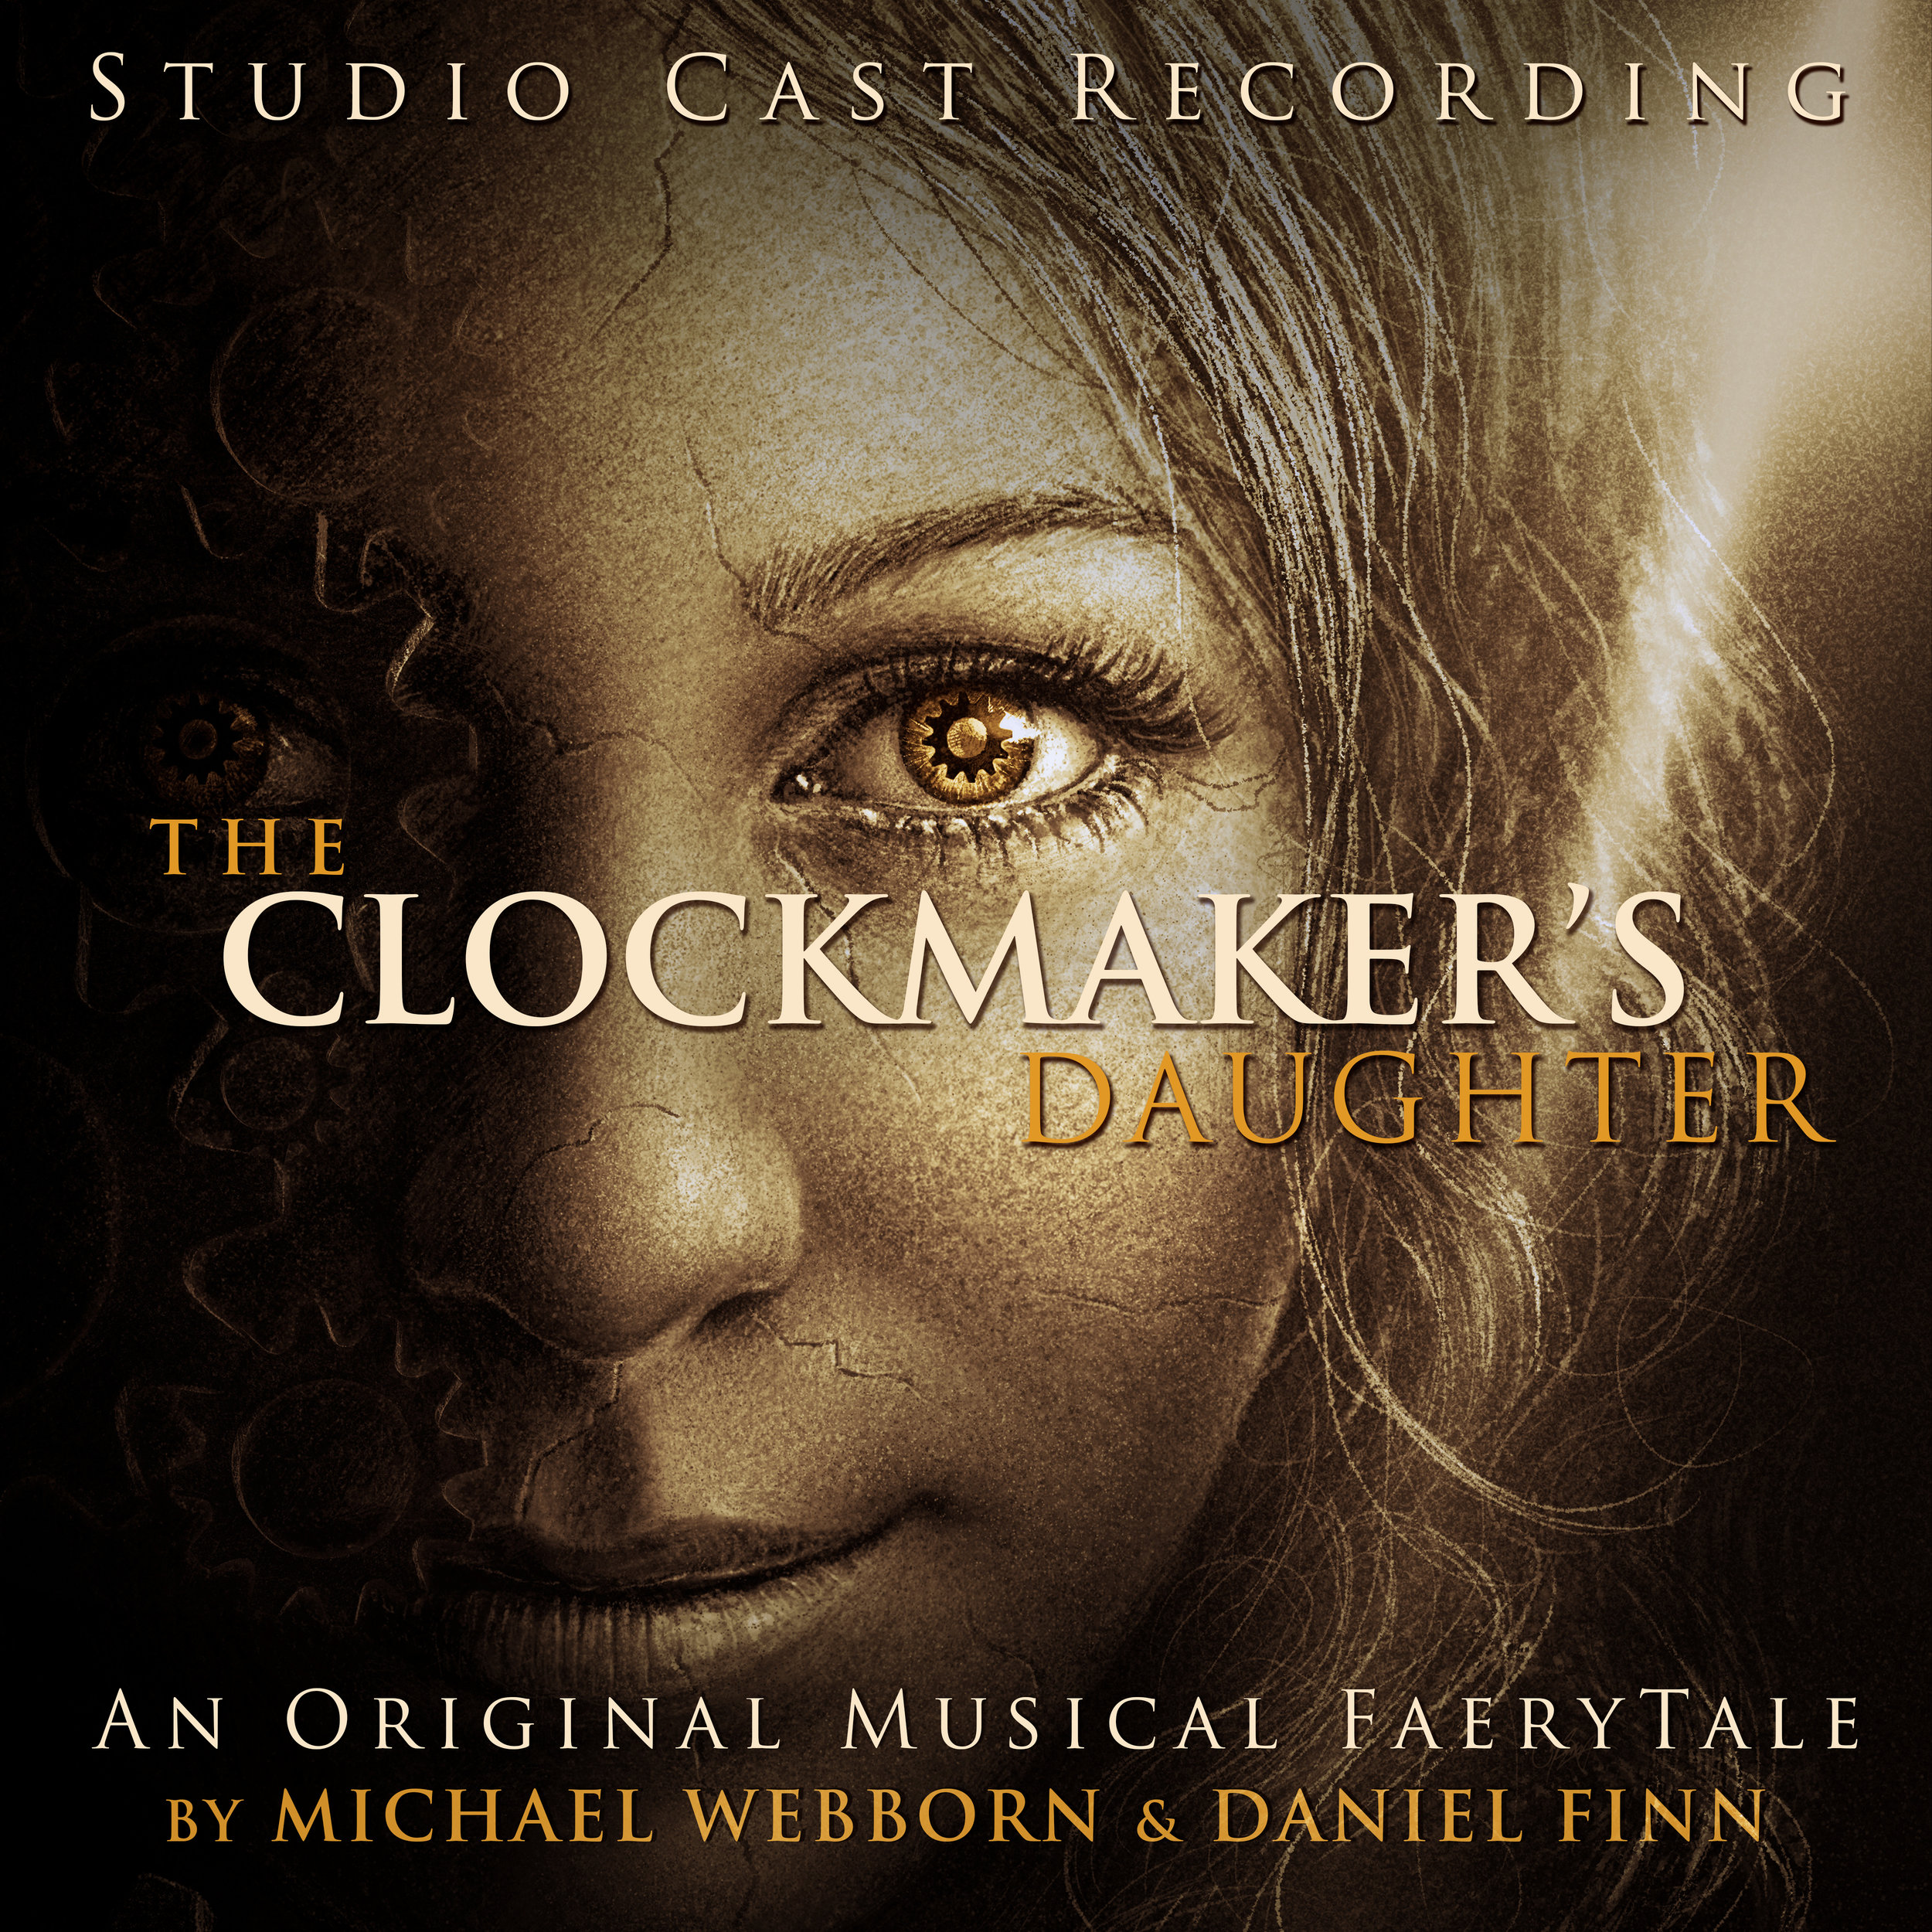 The Clockmaker's Daughter (Studio Cast Recording)